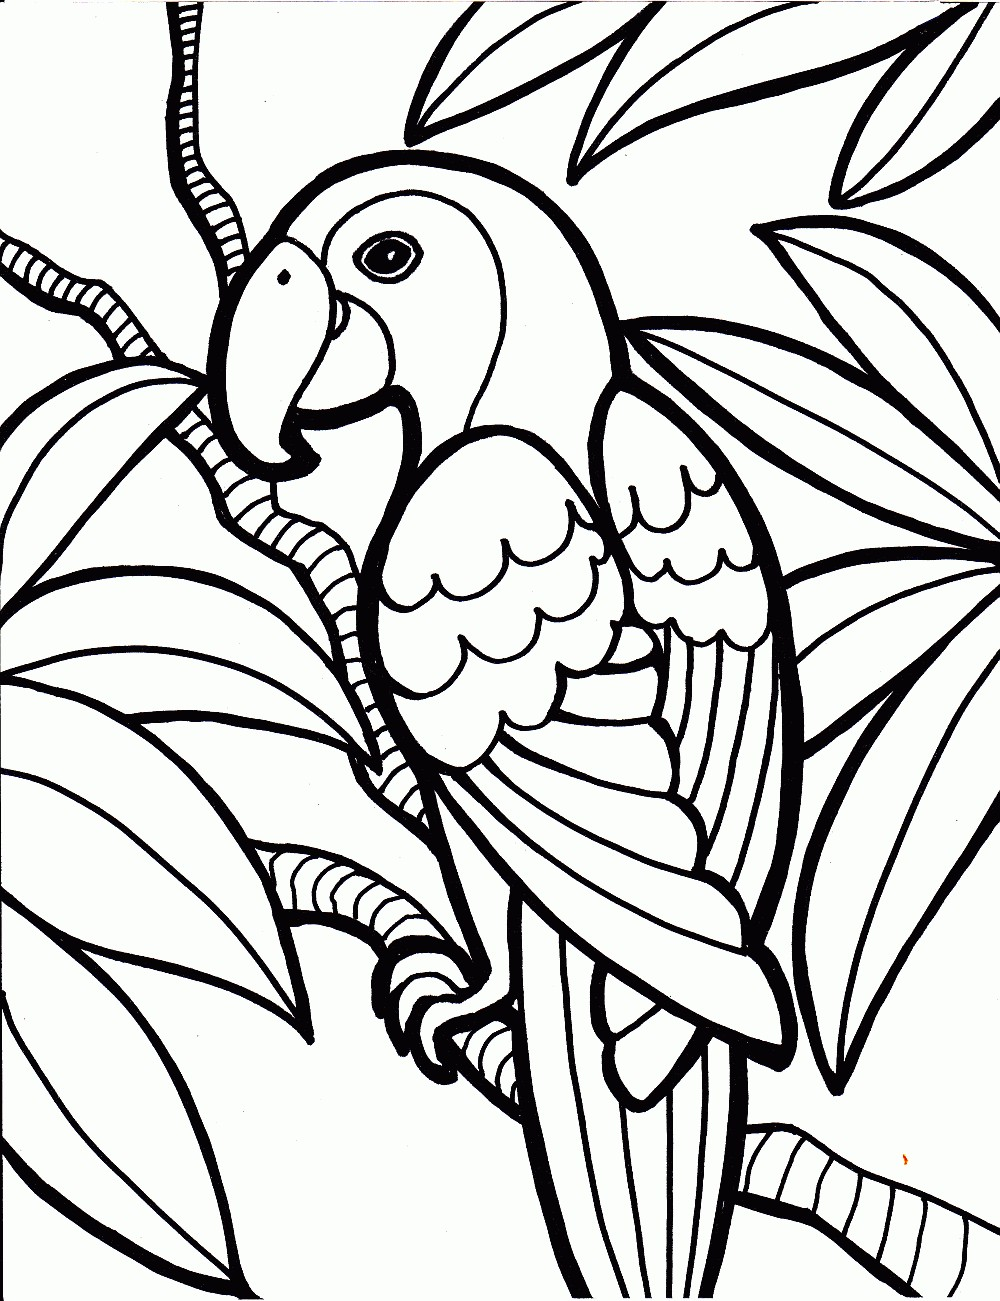 parrot birds coloring page - Colouring In Kids